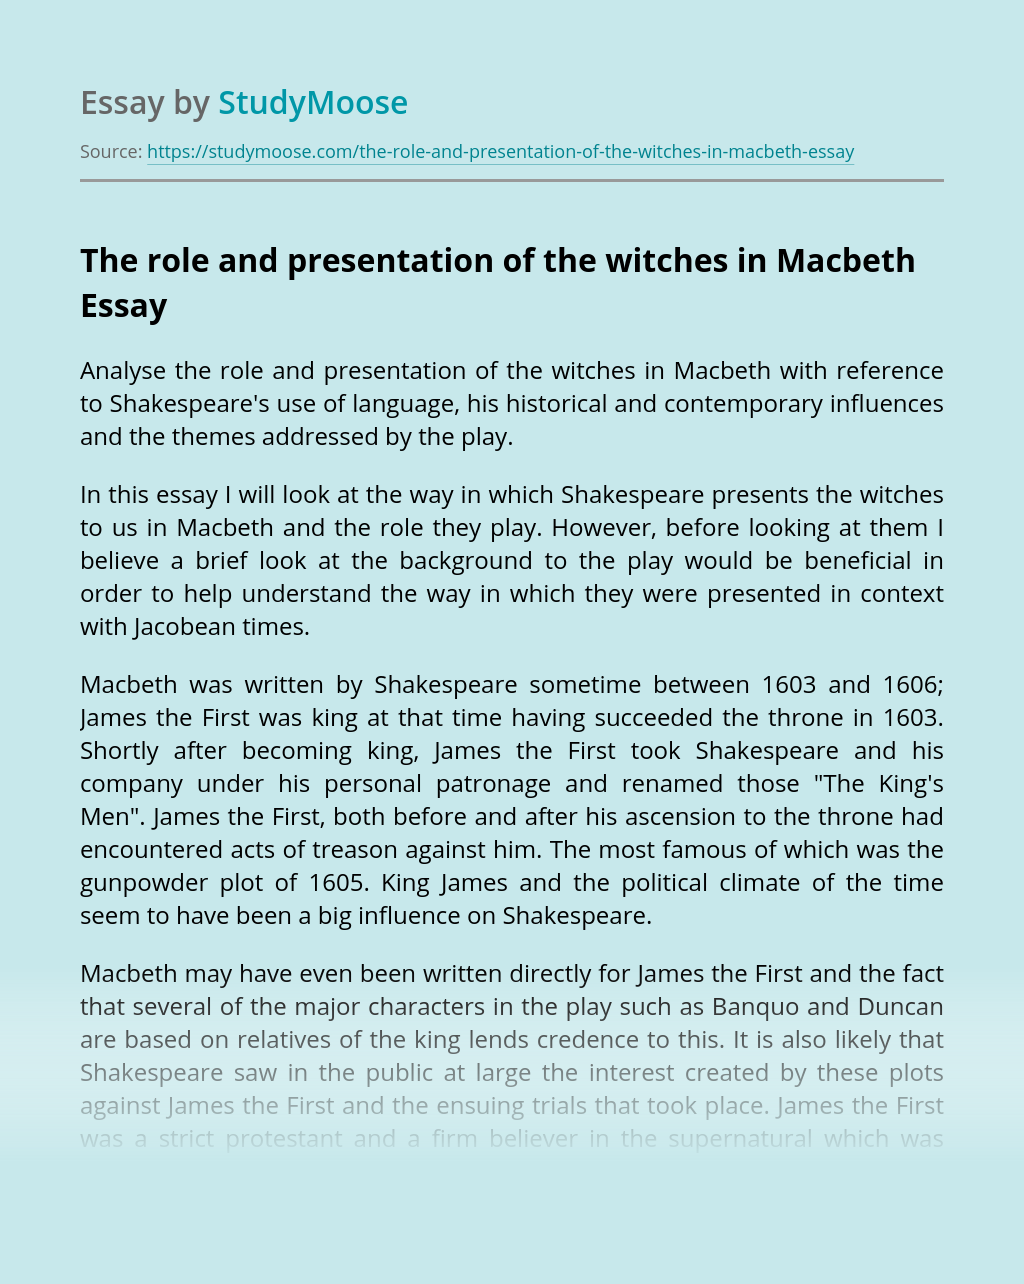 The role and presentation of the witches in Macbeth